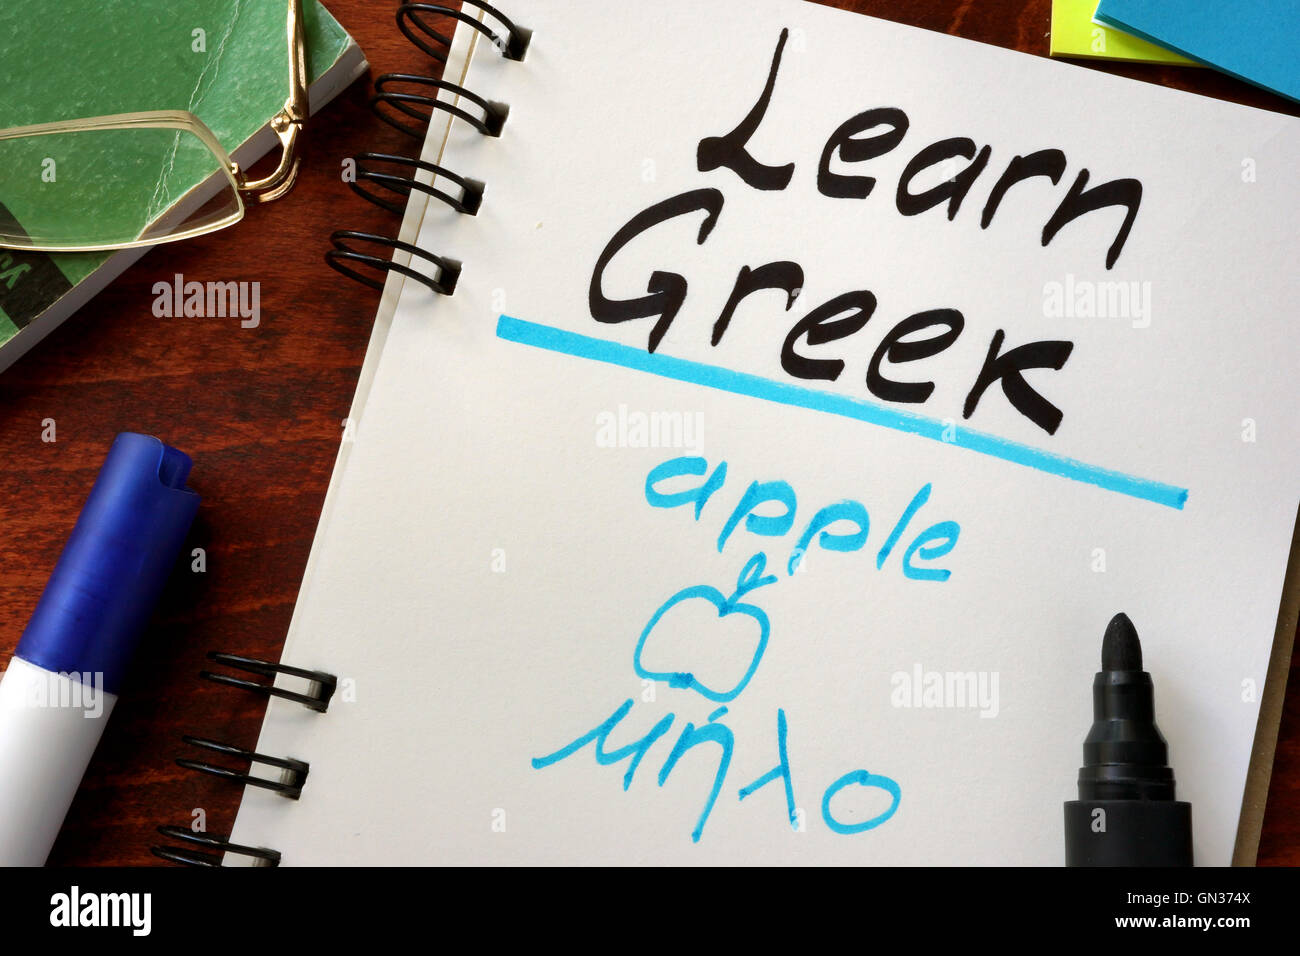 Learn greek written in a notepad.  Education concept. - Stock Image